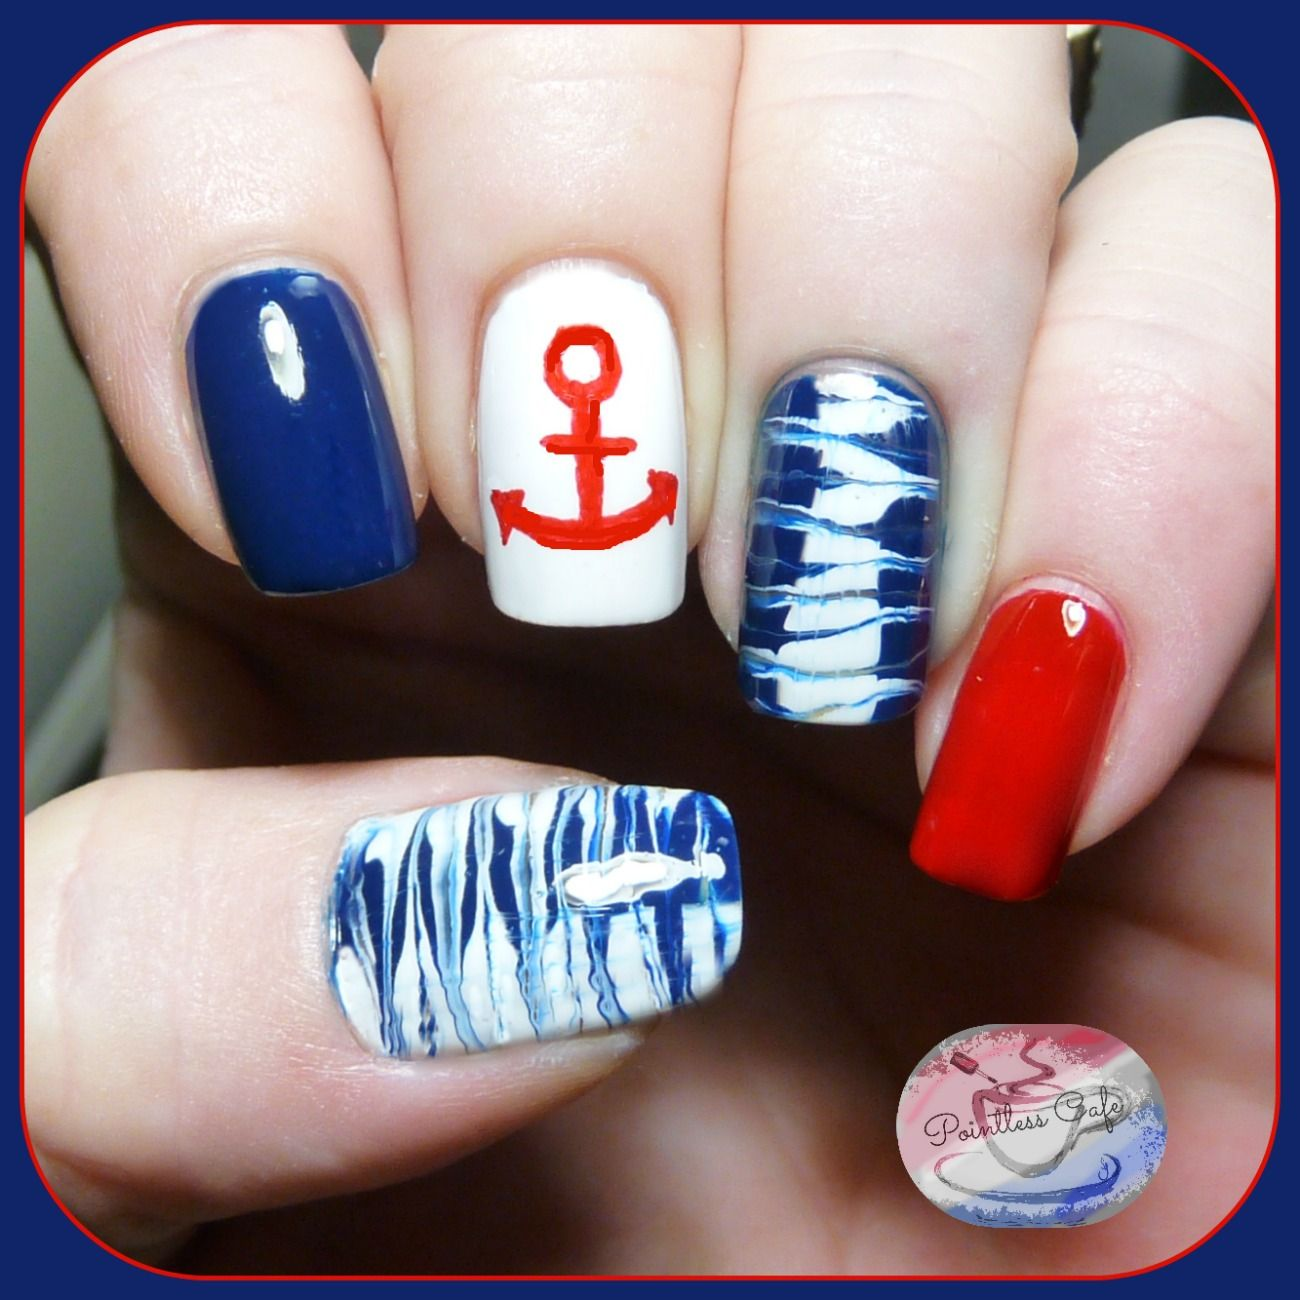 Great Claire Nail Polish Tall Where To Buy Dog Nail Polish Regular Cheap Wholesale Nail Polish Opi Mint Green Nail Polish Young How Do Nail Art SoftPictures Of Nail Art 1000  Images About Nail Art: Nautical On Pinterest